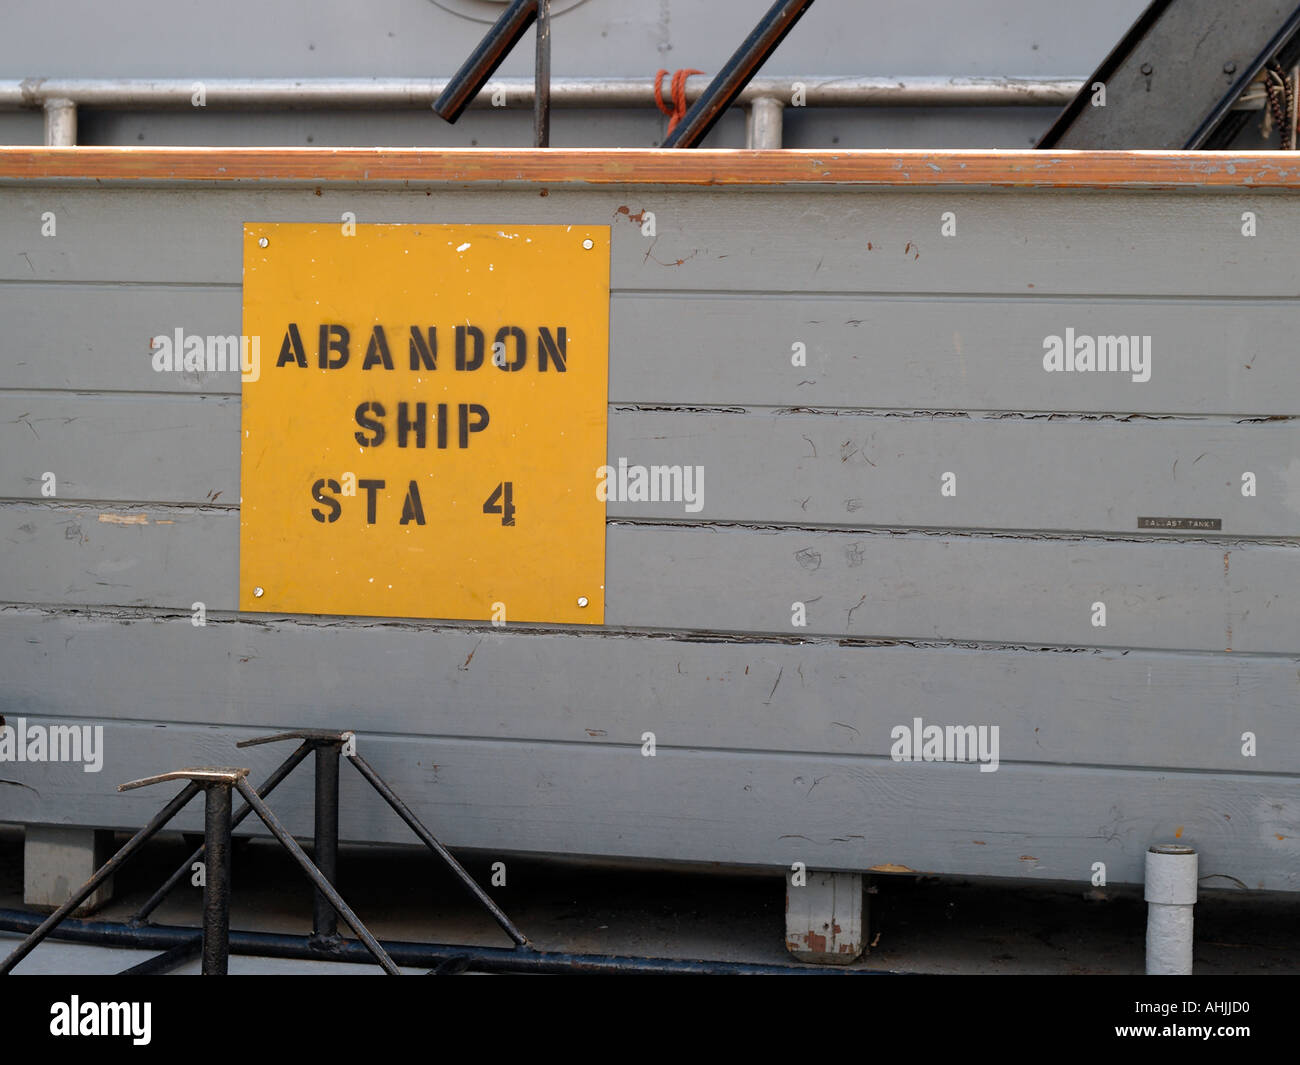 Rear deck of a US Navy cutter displays an abandon ship sign - Stock Image